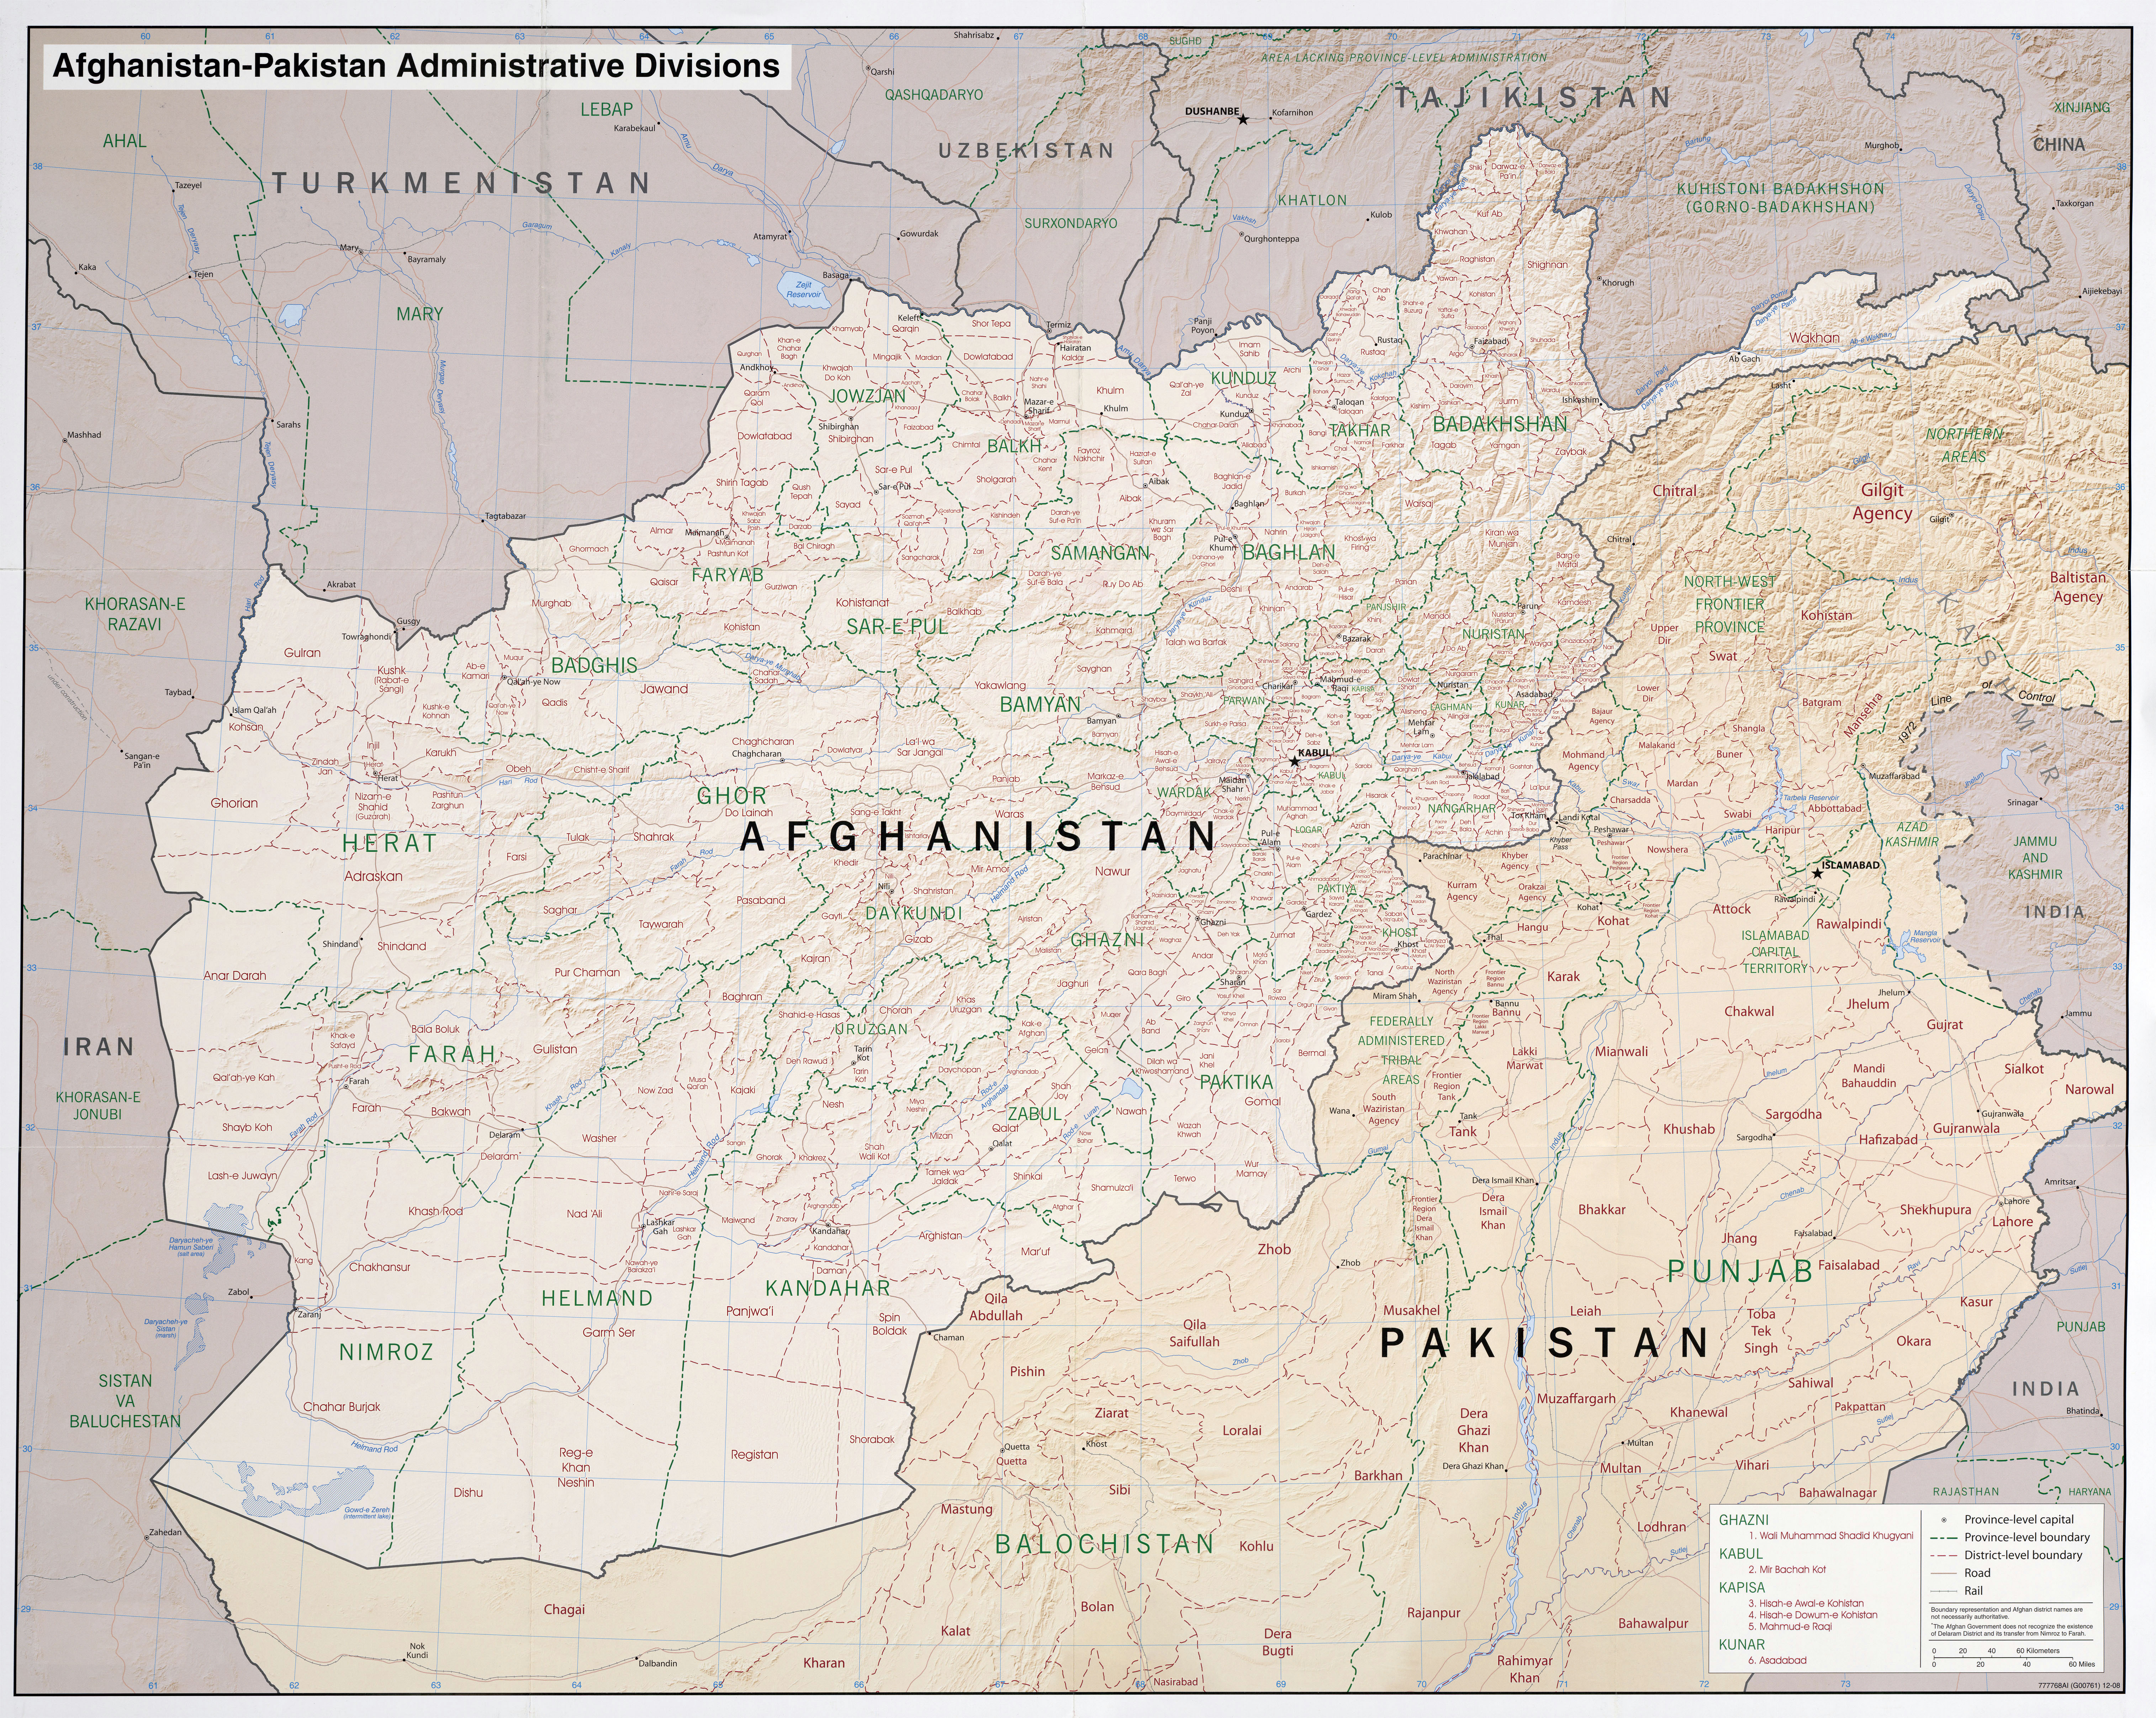 Large scale administrative divisions map of Afghanistan and Pakistan